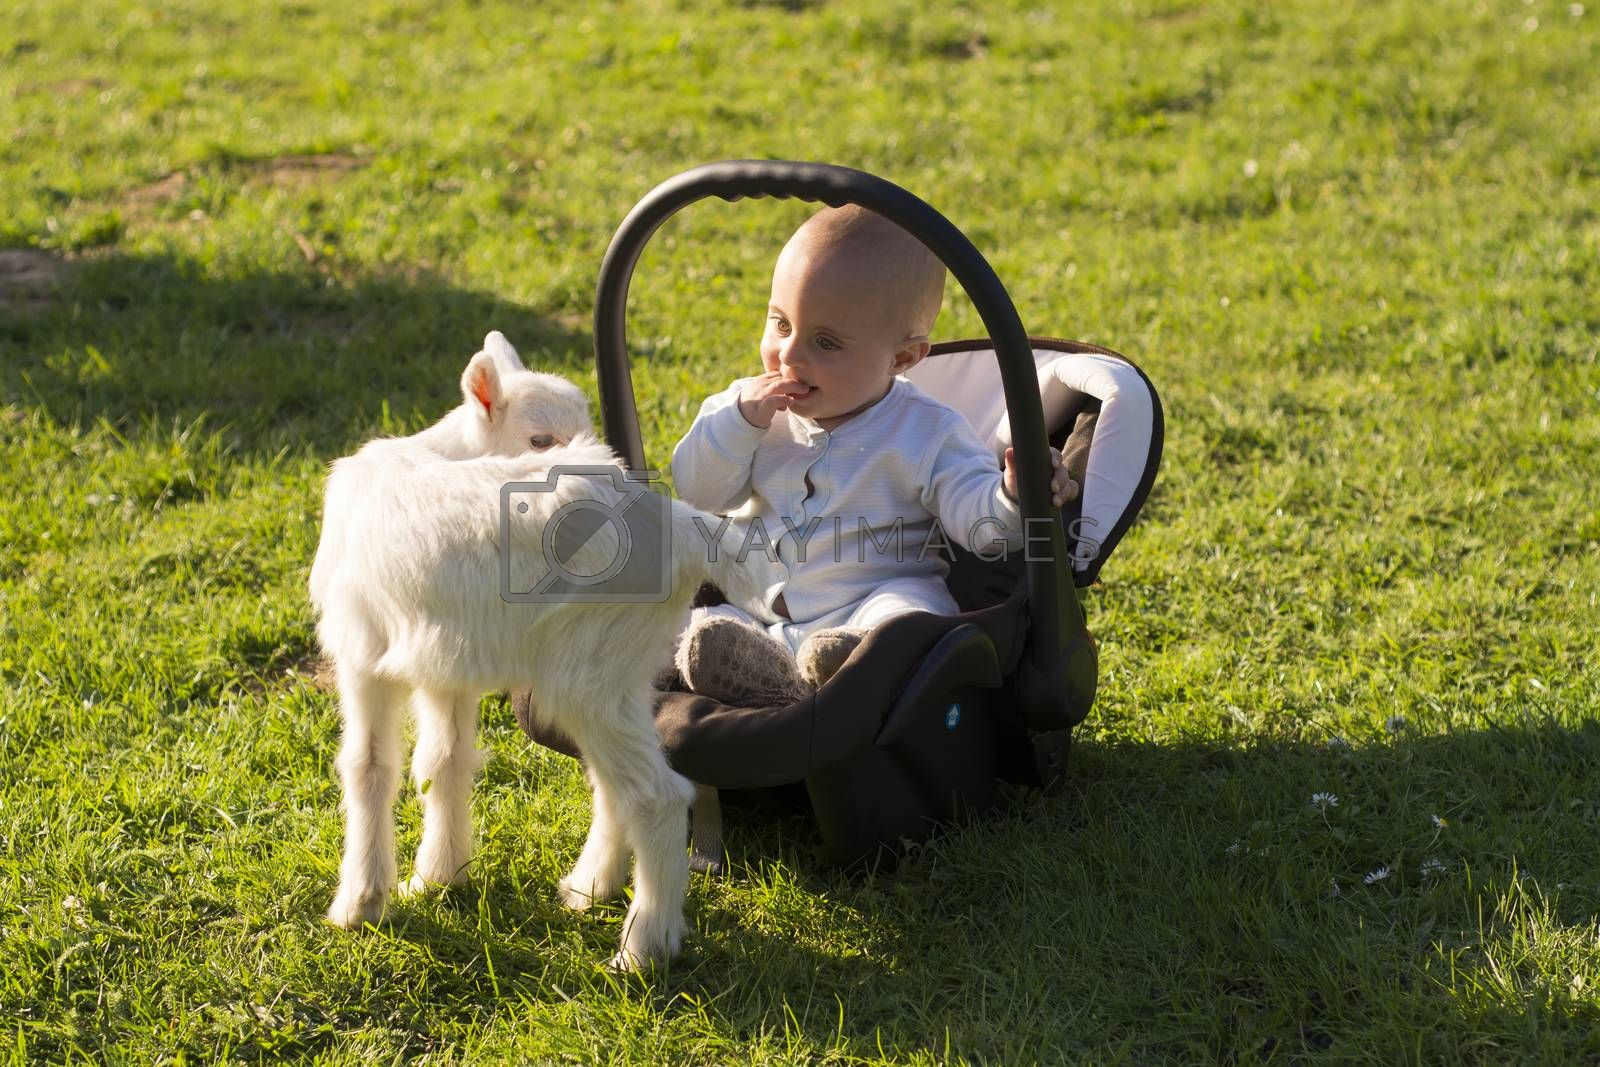 Baby in the carseat and little goat on grass play by adamr